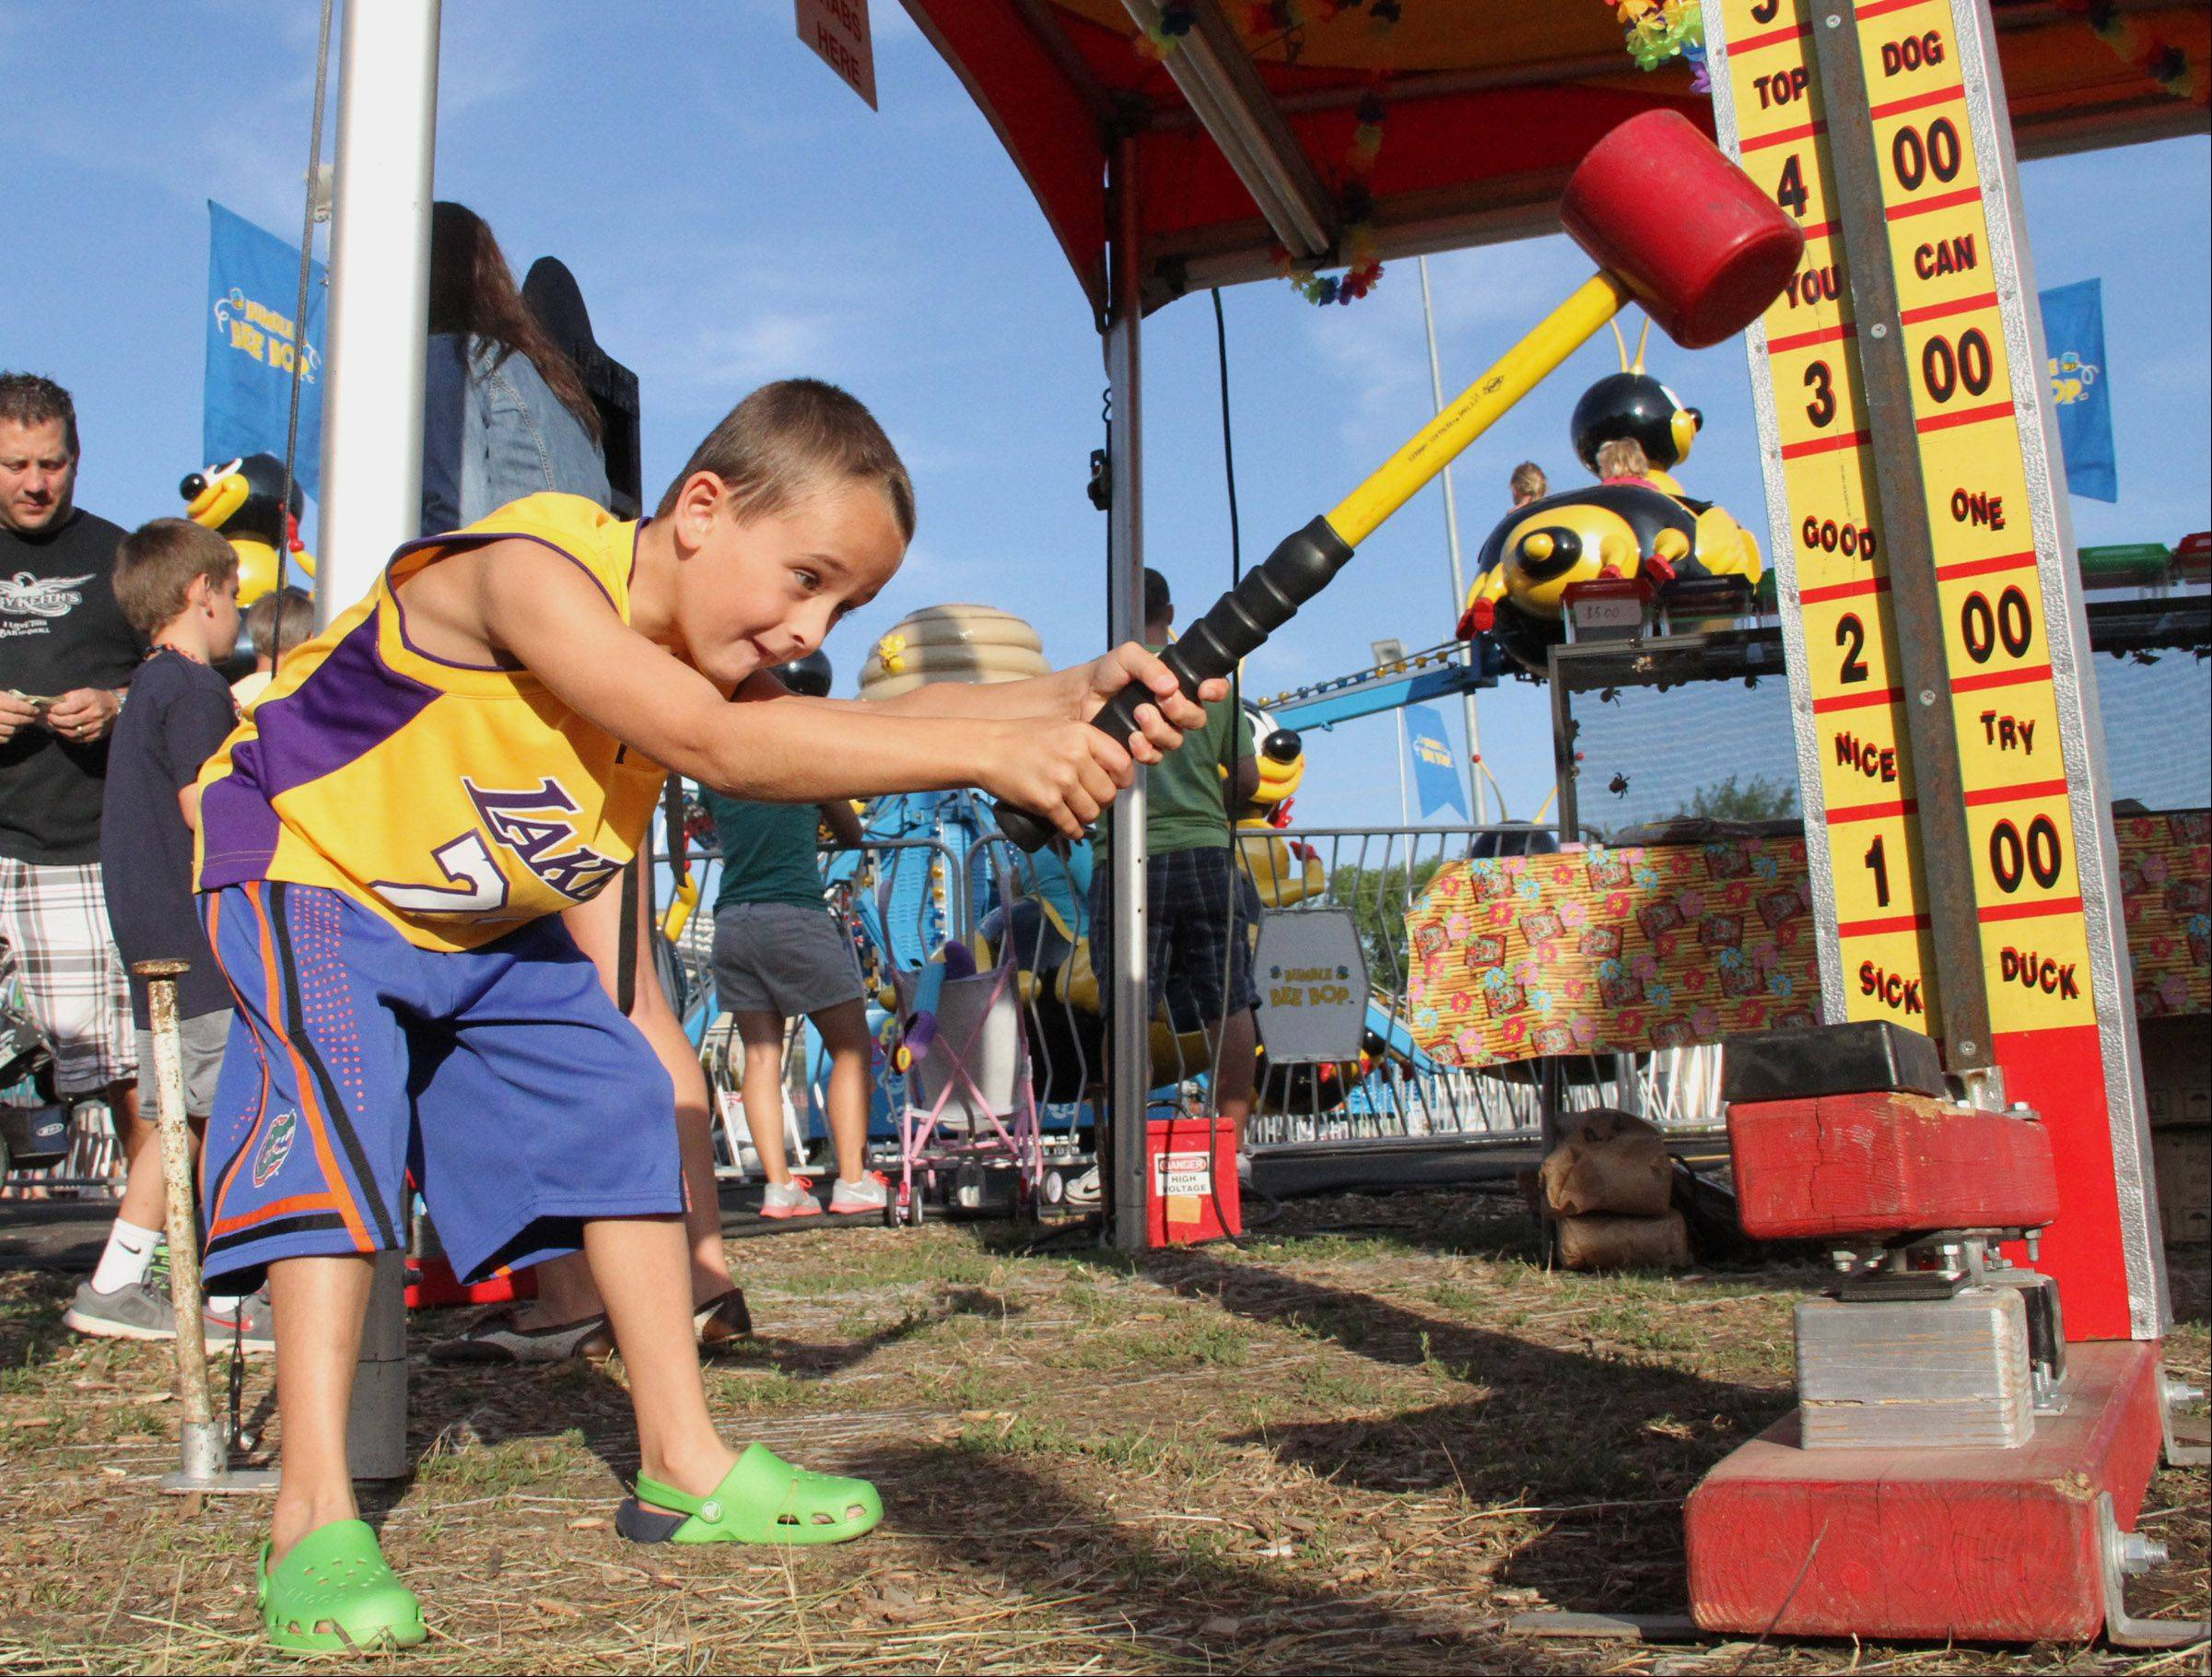 Games are part of the fun at Alpine Fest in Lake Zurich.